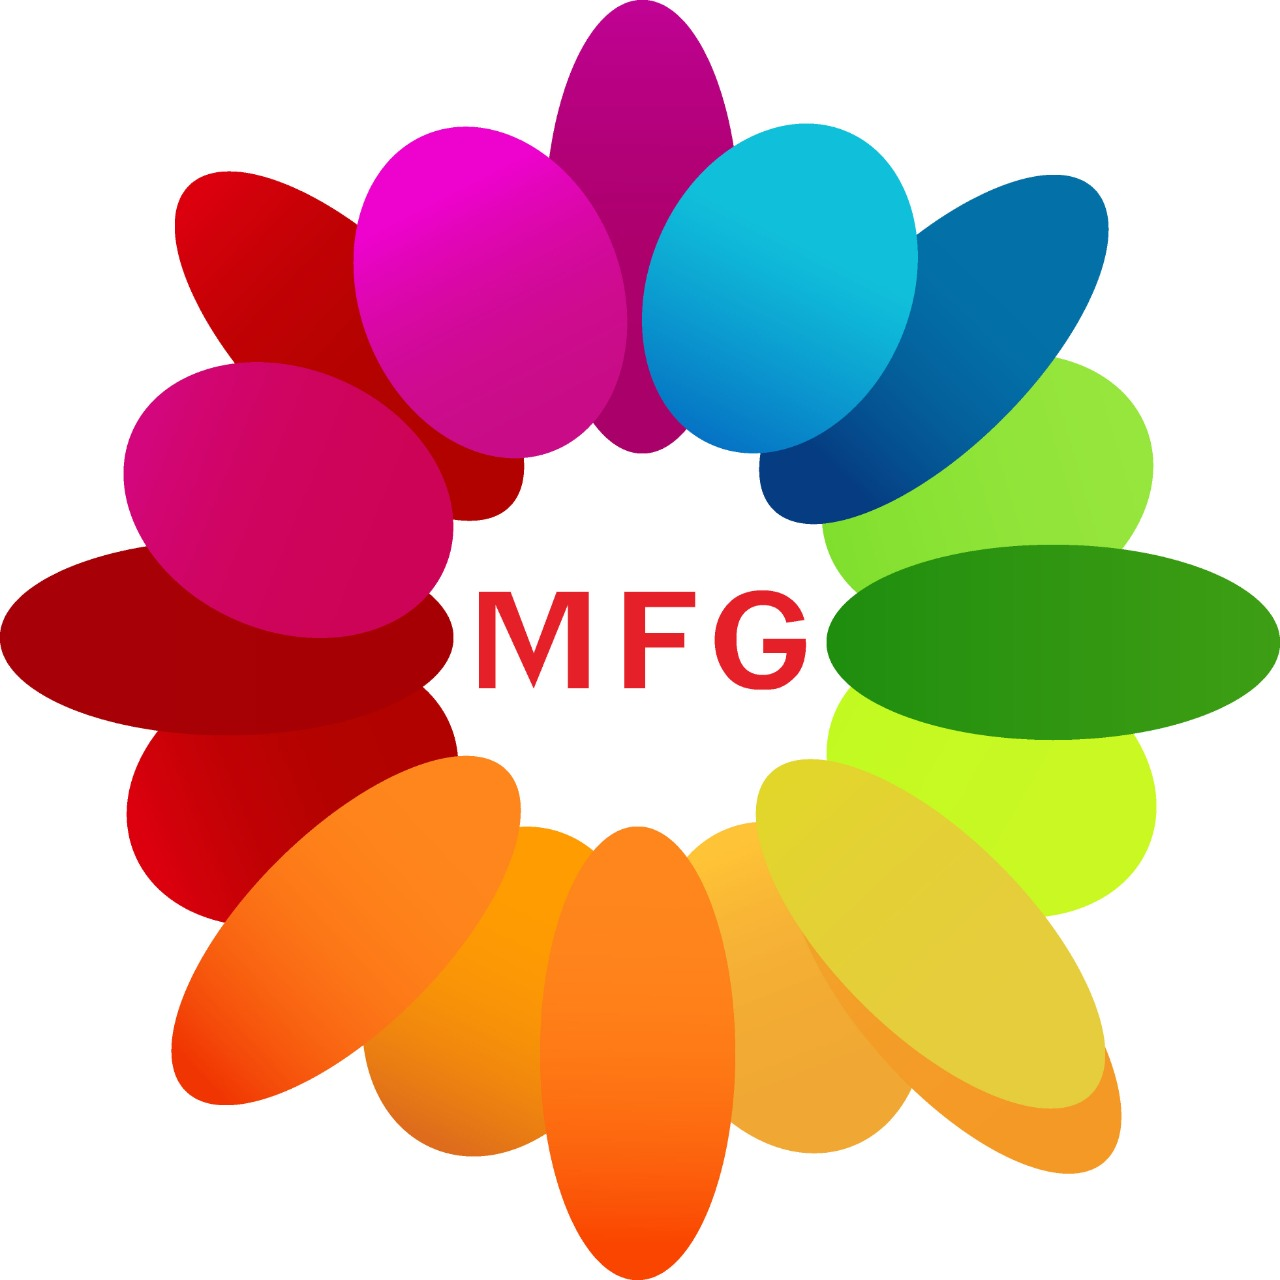 Ferero rocher in heart basket